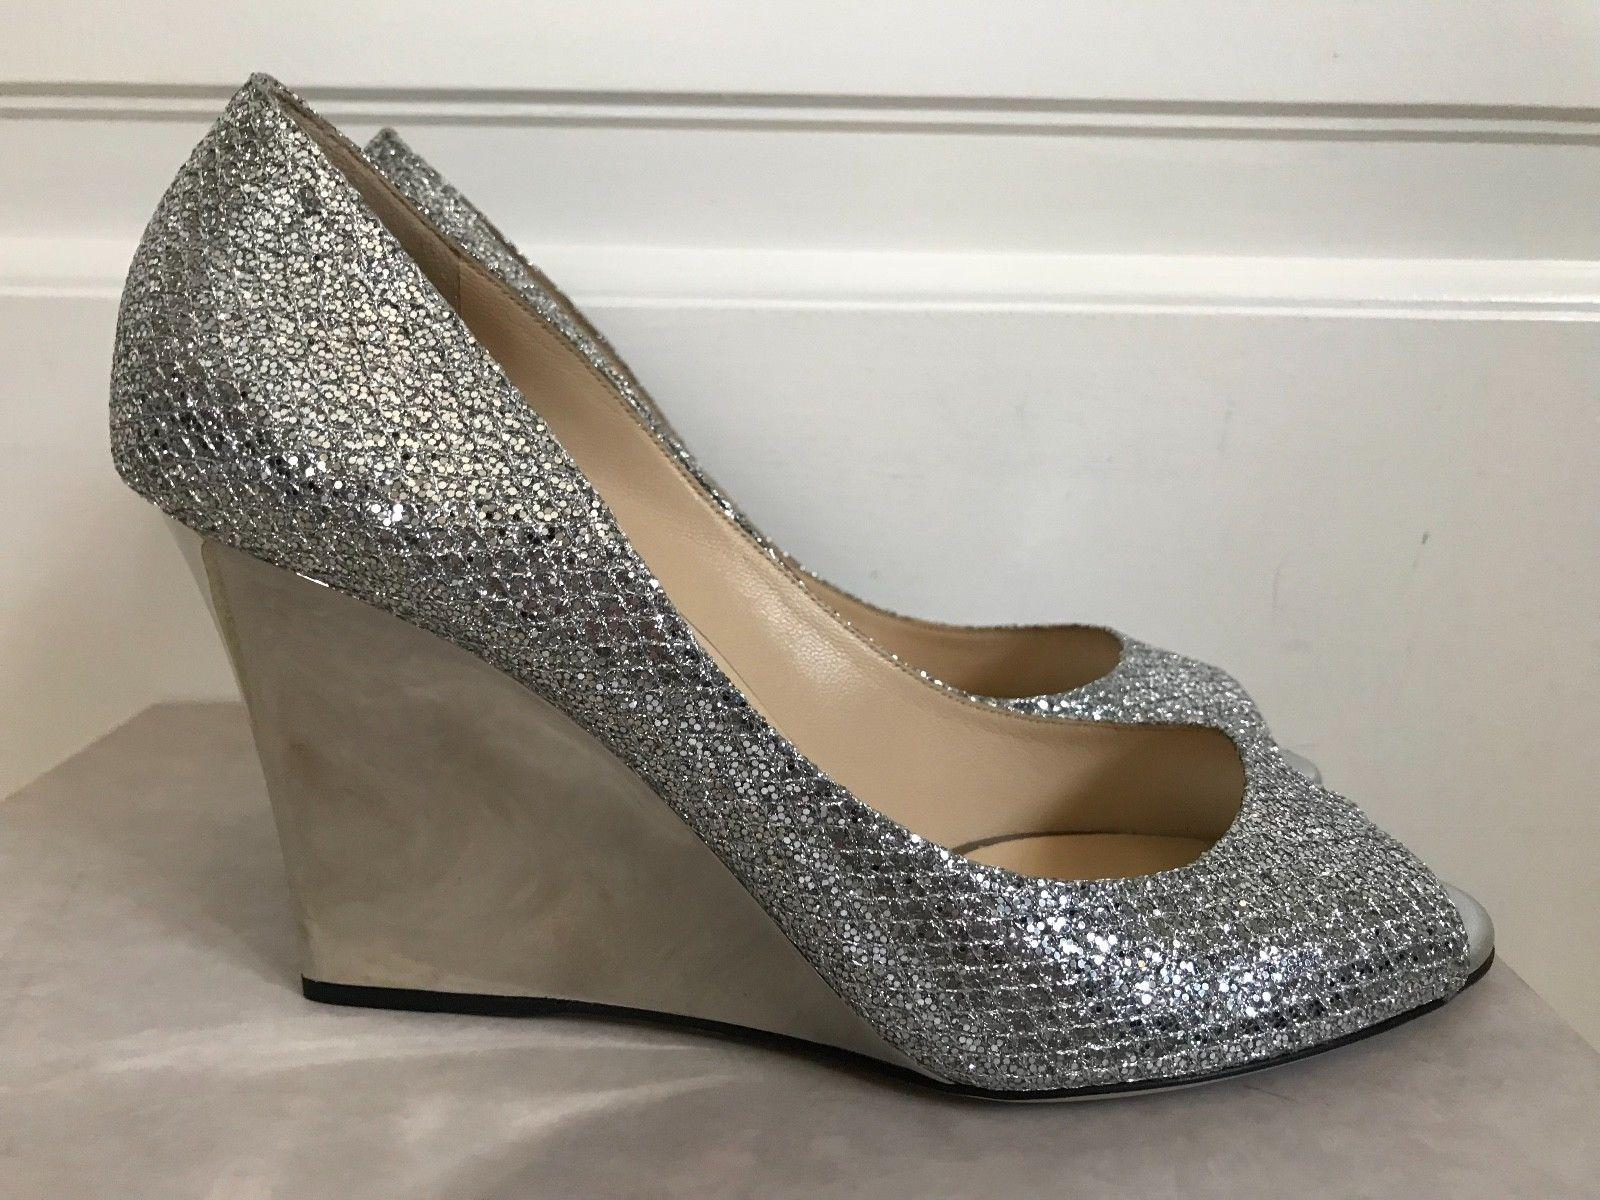 7fd1be66656 Jimmy Choo Baxen Metallic Silver Glitter Peep Toe Wedge Pumps ladies ...